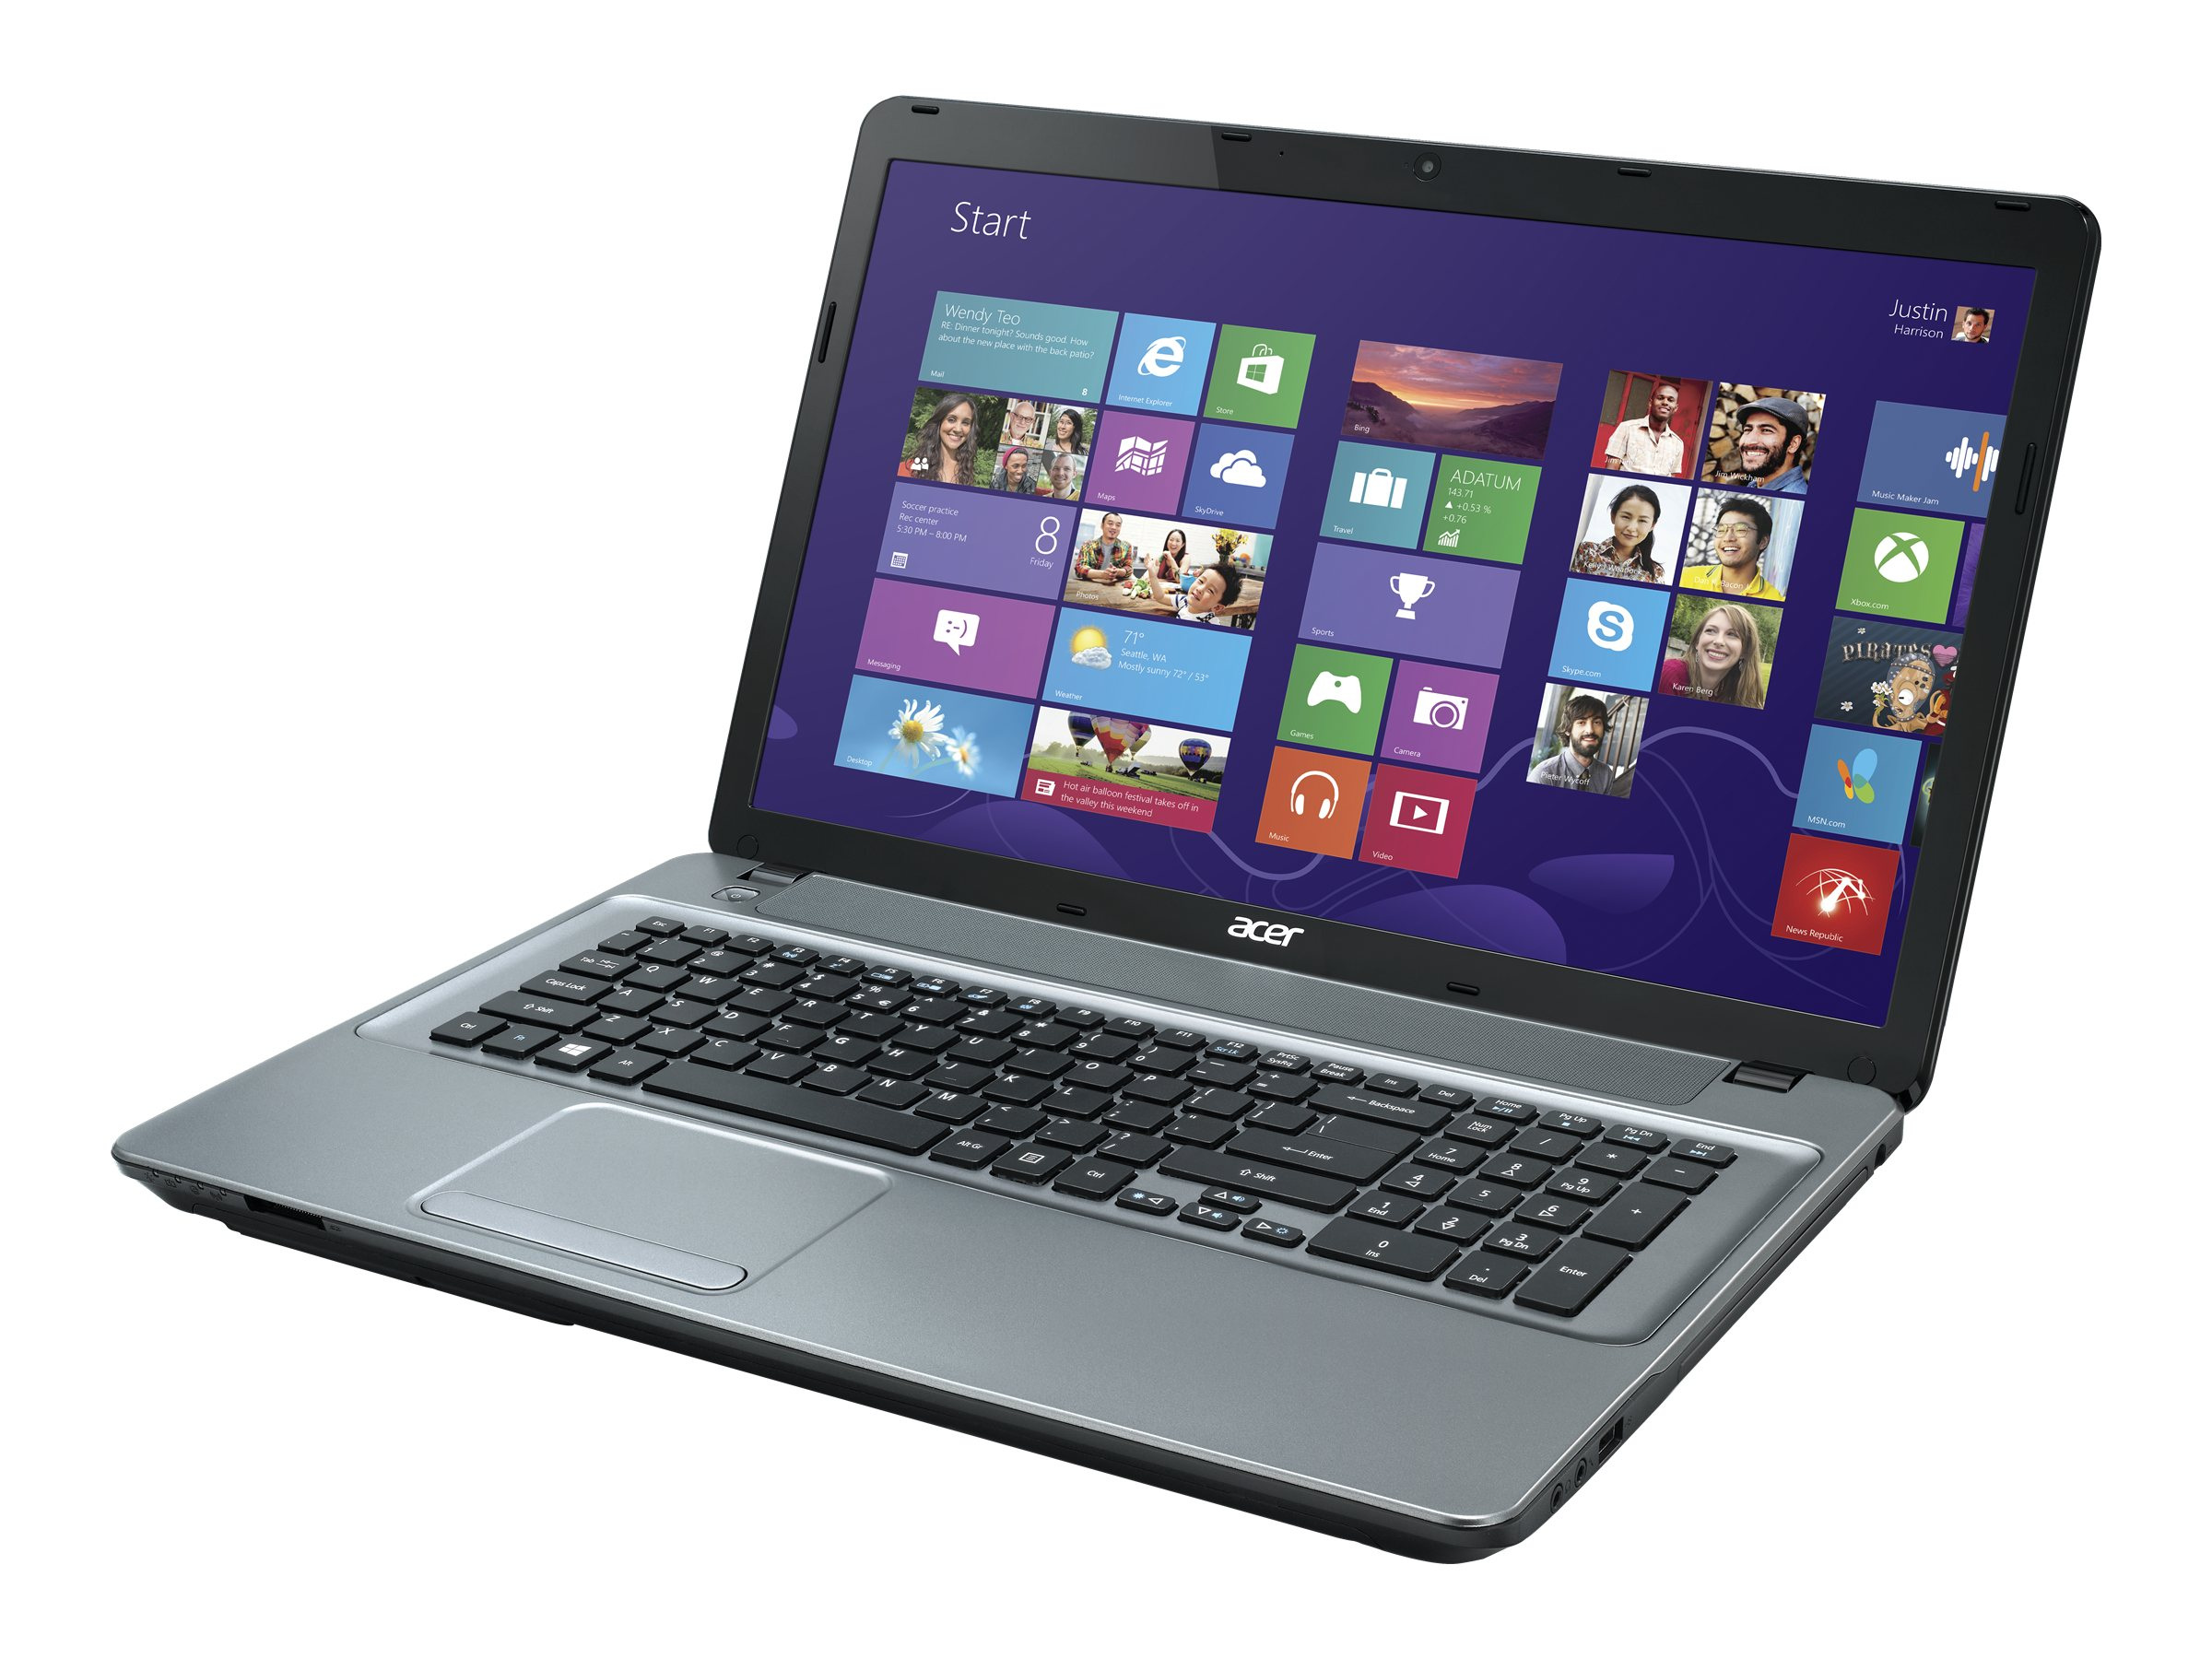 Acer Aspire E1-771-6458 2.4GHz Core i3 17.3in display, NX.MG7AA.006, 16733410, Notebooks